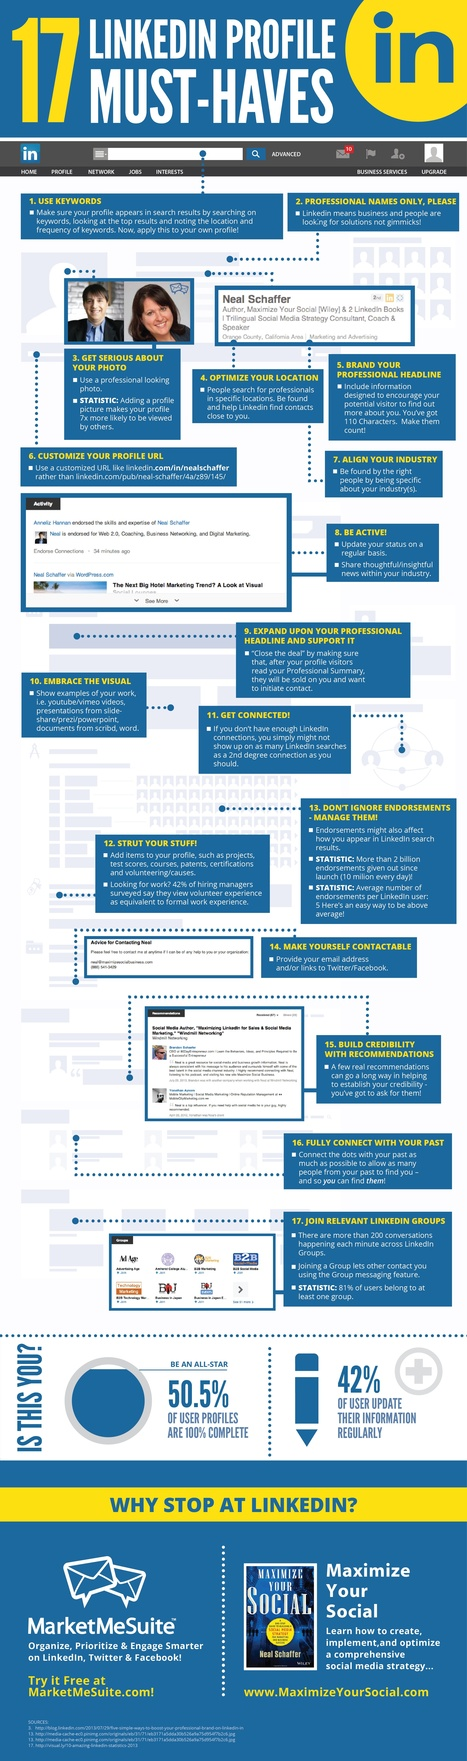 17 Must-Haves for Your LinkedIn Profile [INFOGRAPHIC] | Online tips & social media nieuws | Scoop.it